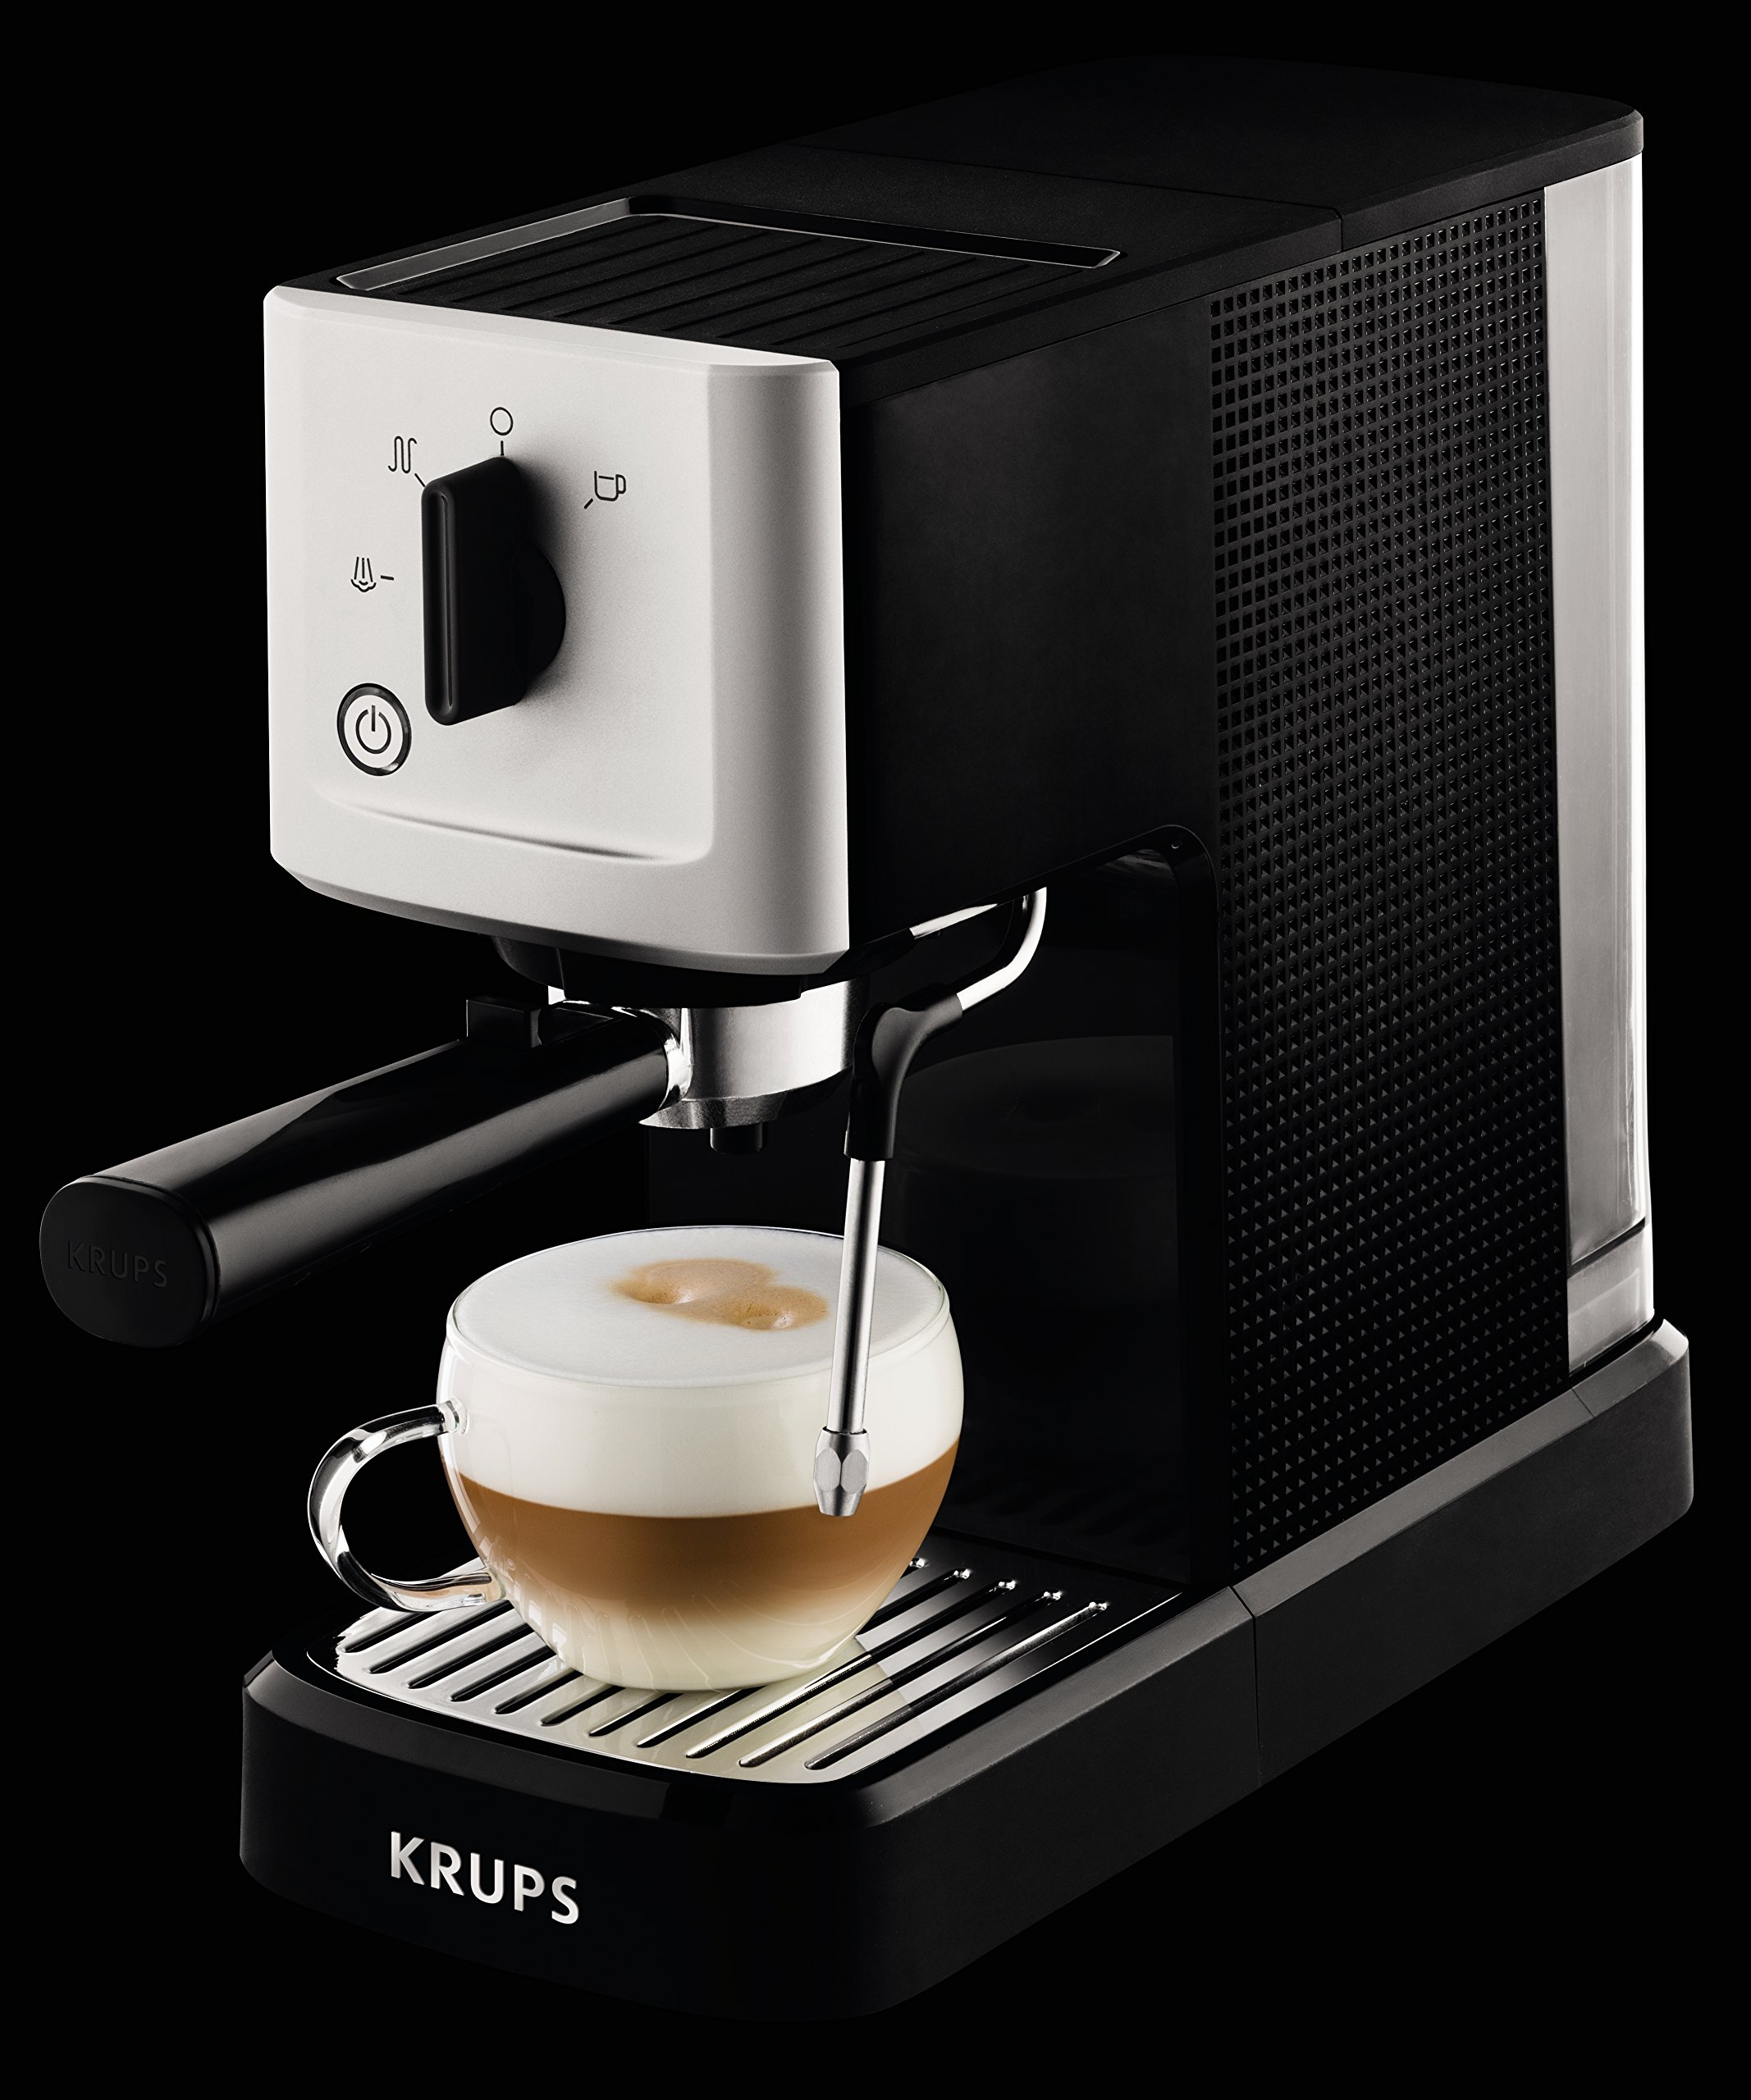 Krups-XP344040-Calvi-Manual-Espresso-Steam-and-Pump-Coffee-Machine-1500-W-Black